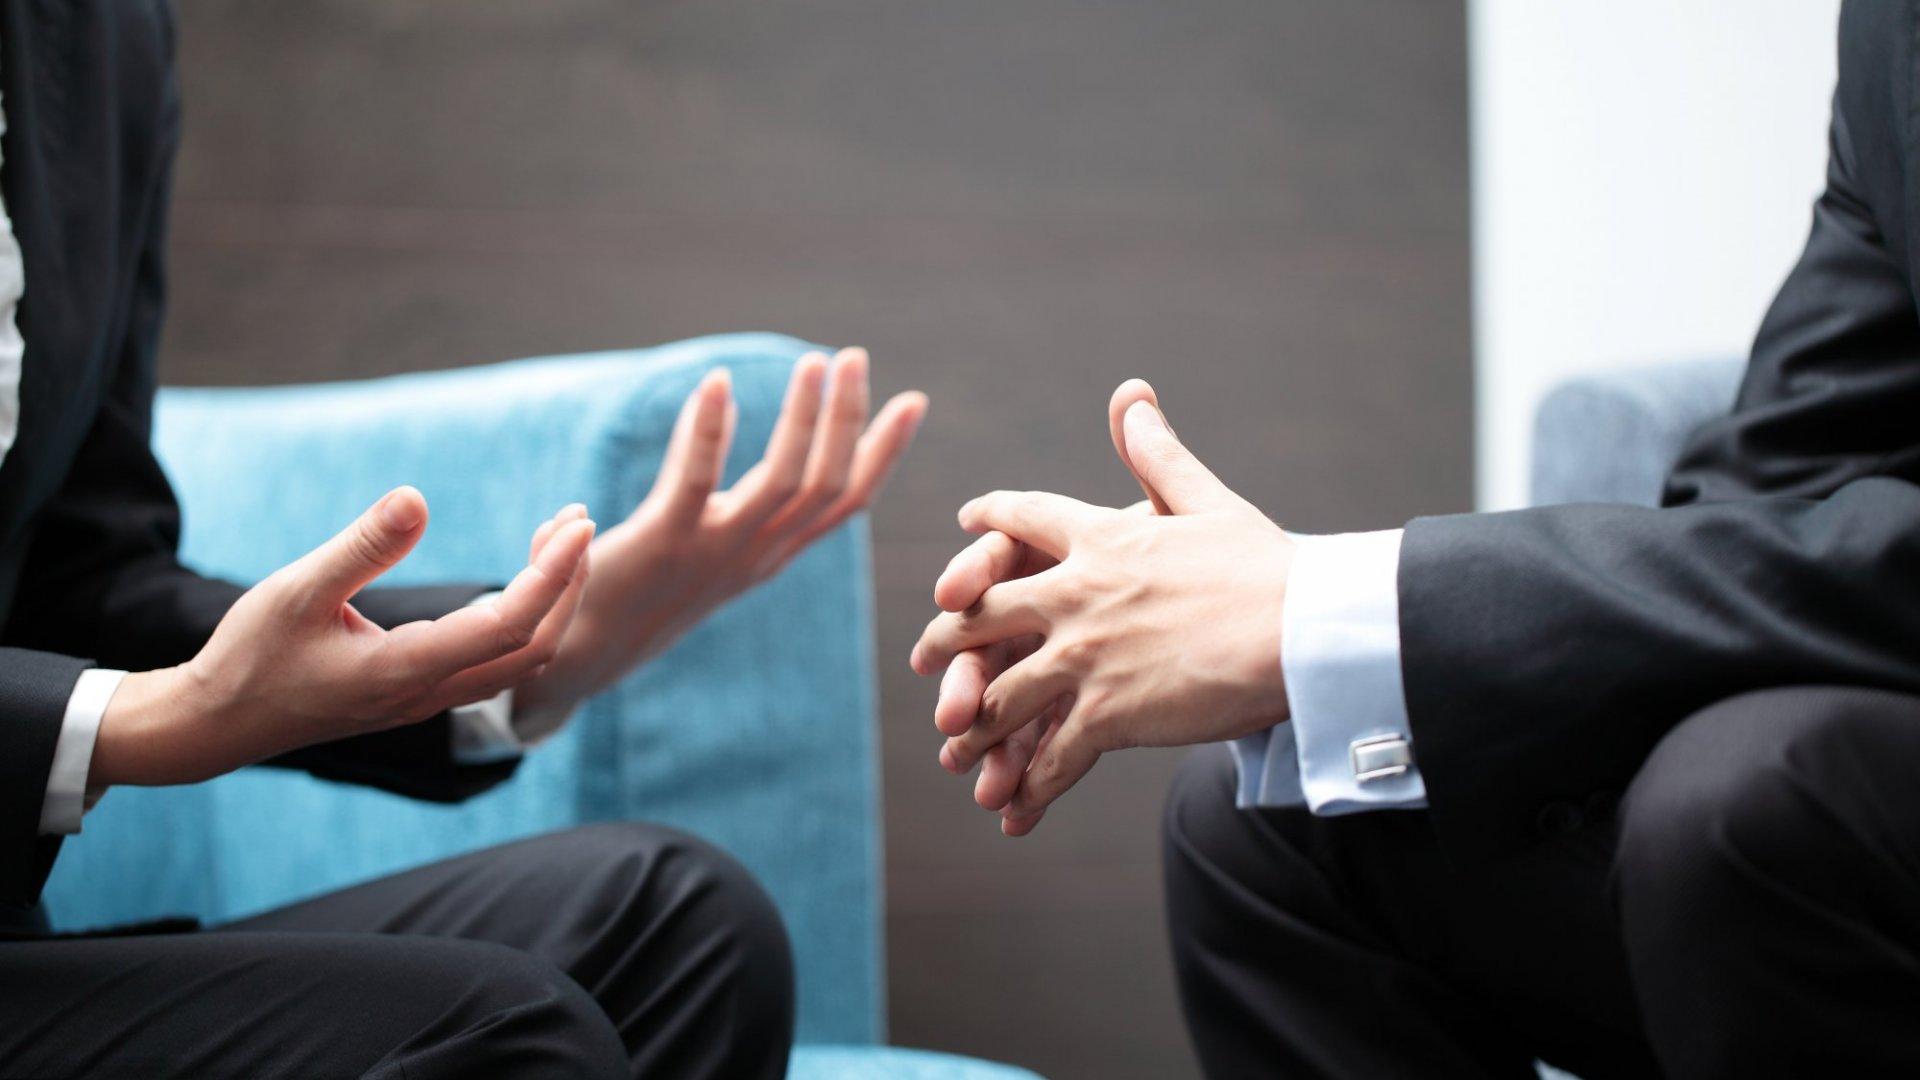 Here's What the Pros Are Saying About Your Professional Body Language